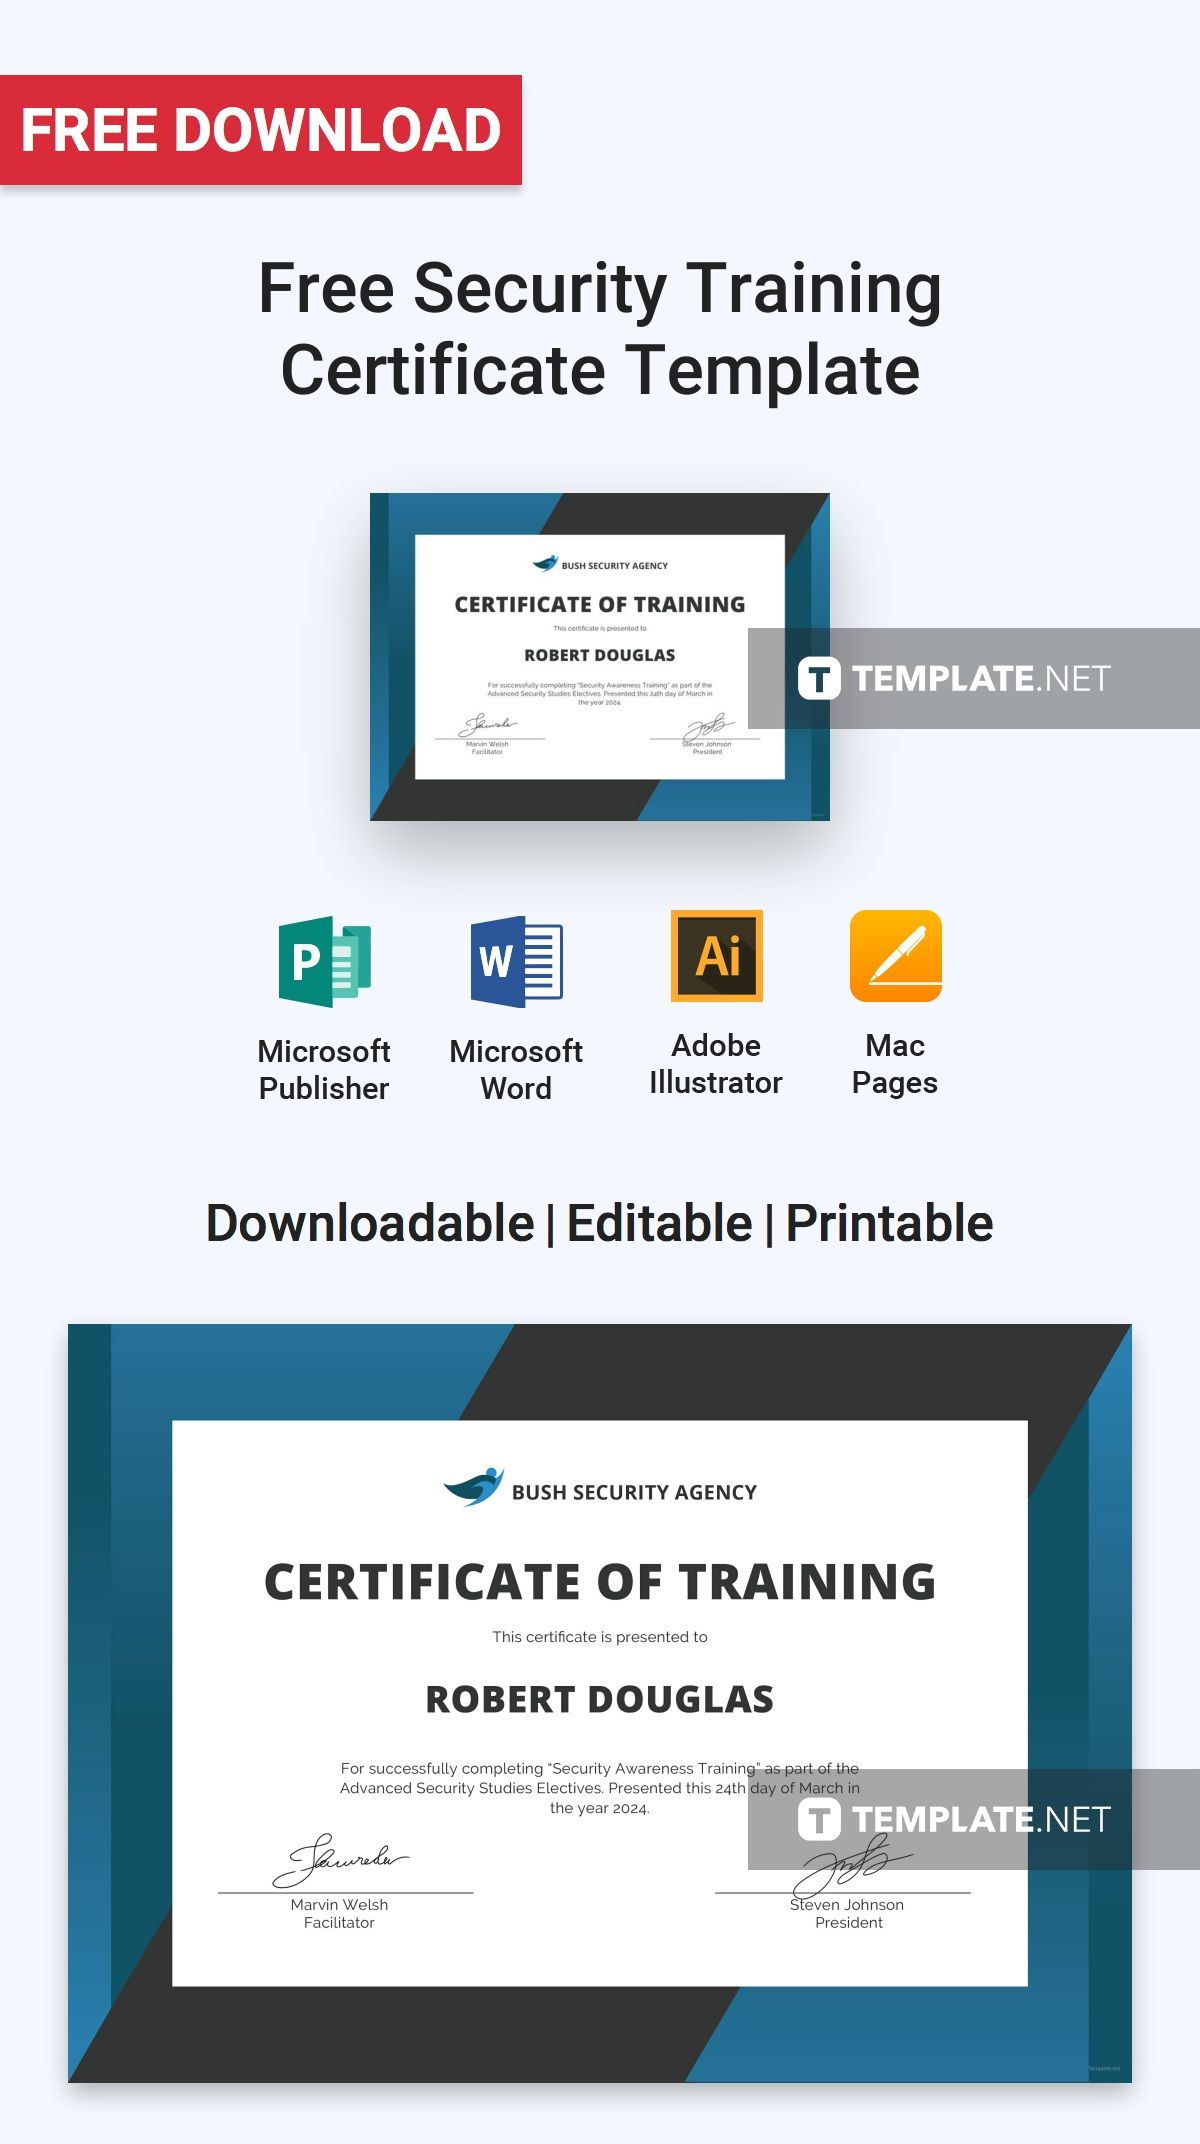 Security Training Certificate Template Free Pdf Word Doc Psd Apple Mac Pages Google Docs Illustrator Publisher Outlook Training Certificate Certificate Templates Certificate Authority